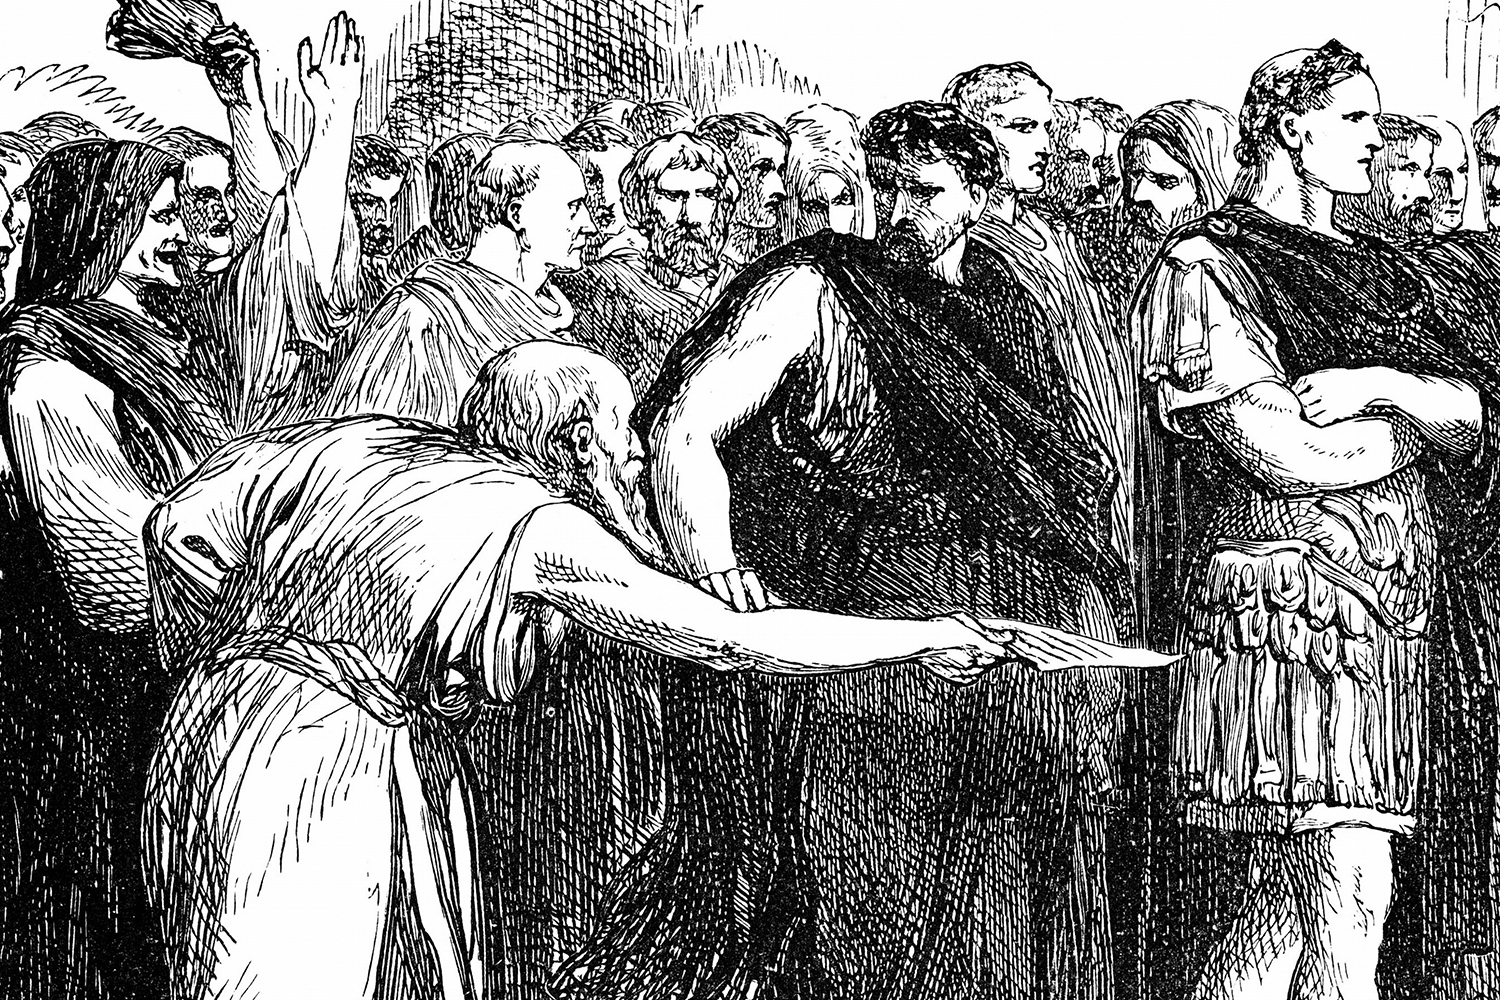 warning juilus caesar of the ides Caesar had previously been warned by a seer that he would come to harm no later than the ides of march, a warning  julius caesar in the play, the warning.